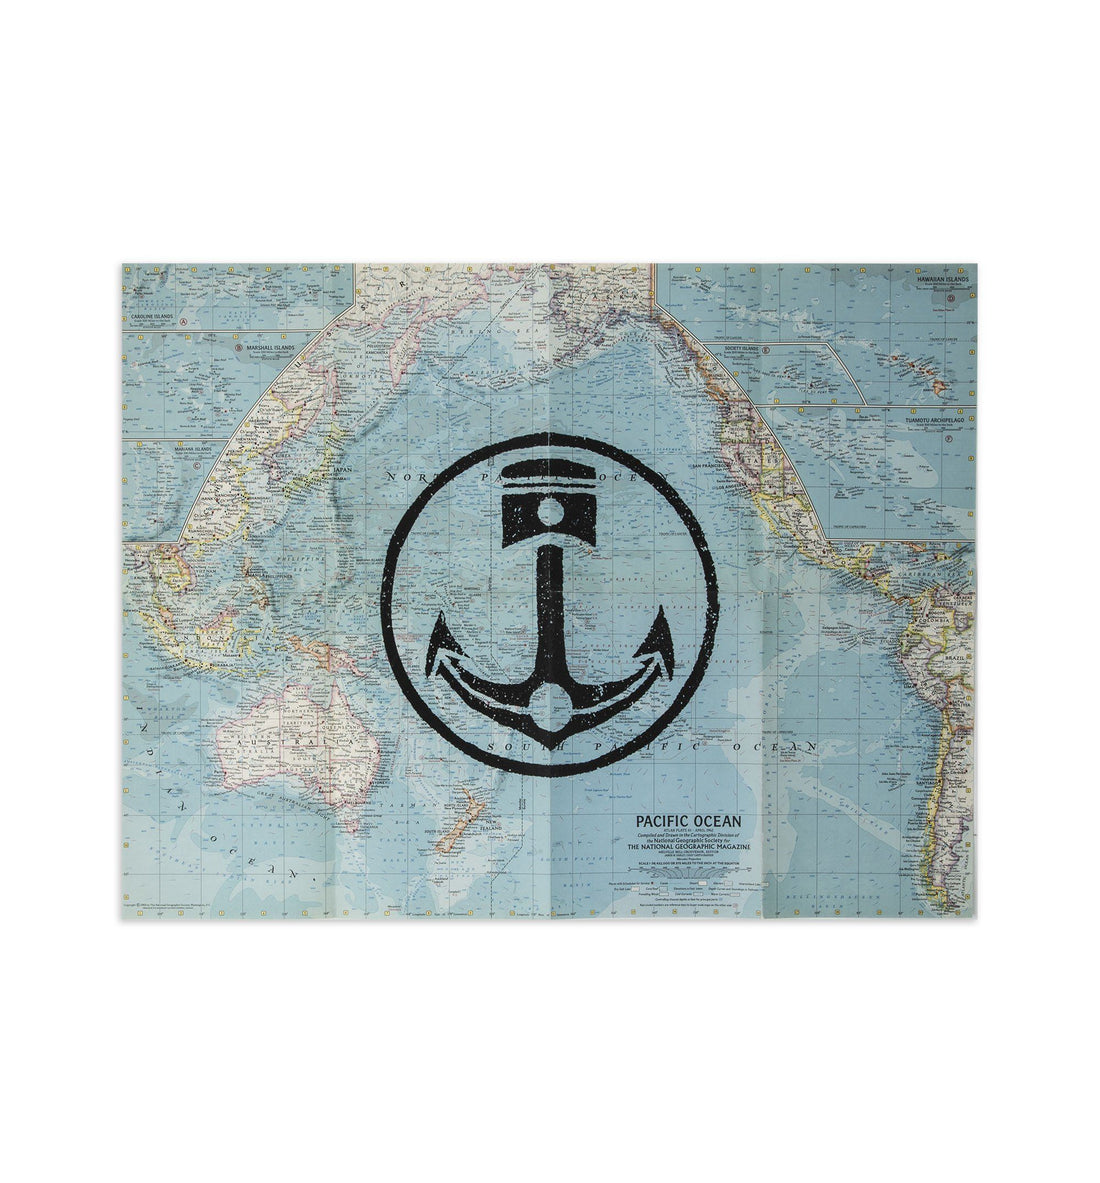 "Iron & Resin Vintage Map Poster - Pacific Ocean - 19"" x 25"" - Art/Prints - Iron and Resin"